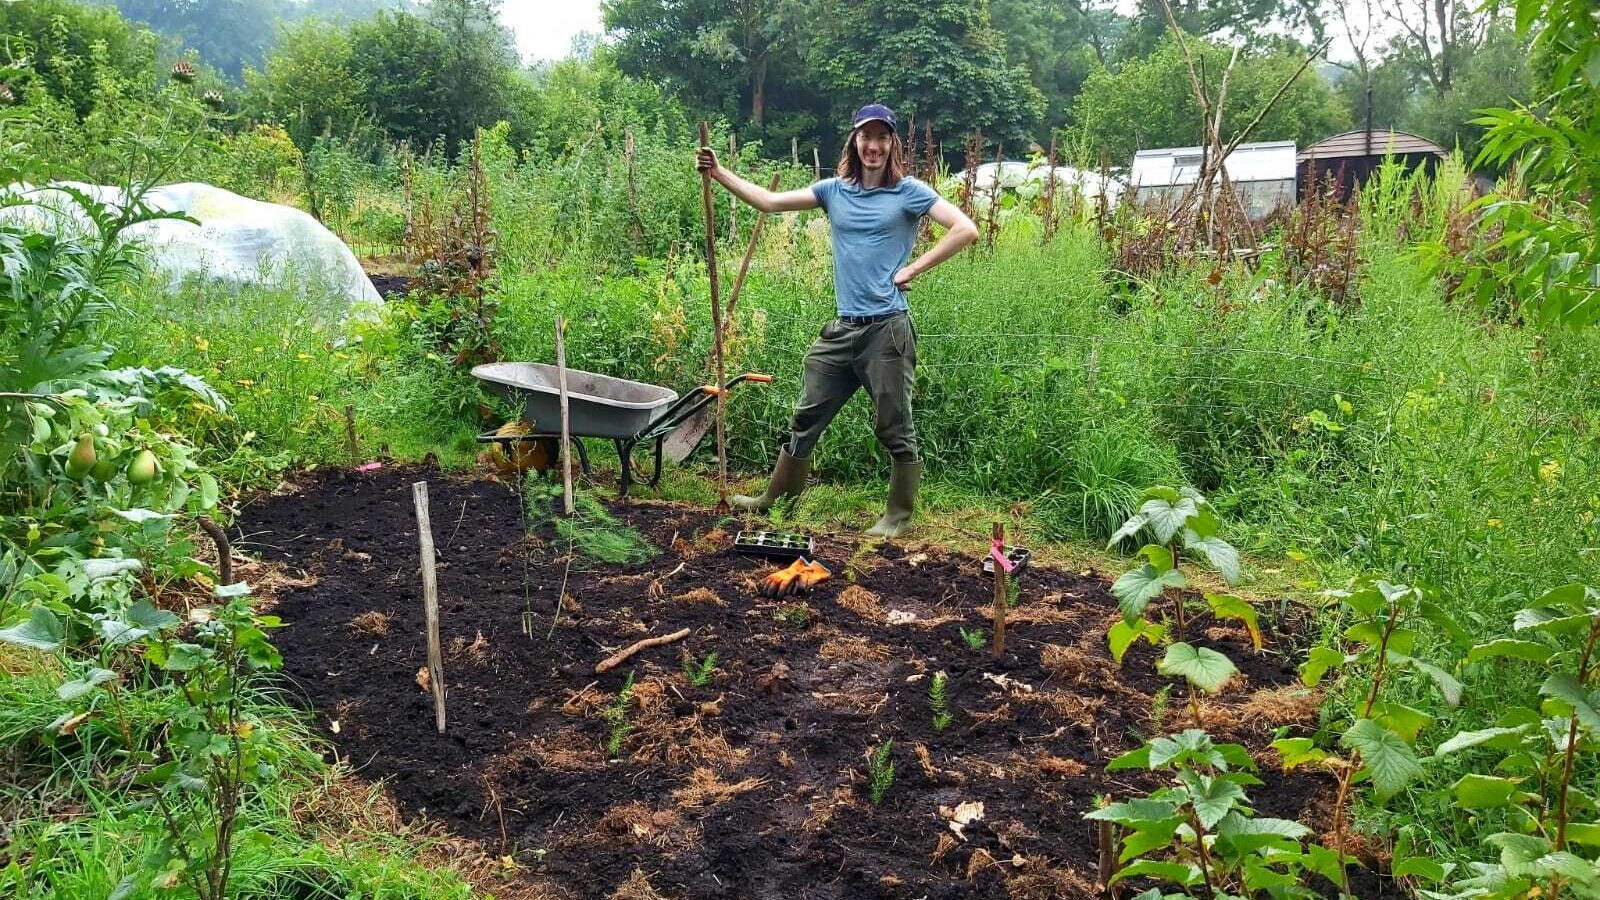 A man poses with a wheelbarrow and hoe in front of a small vegetable patch